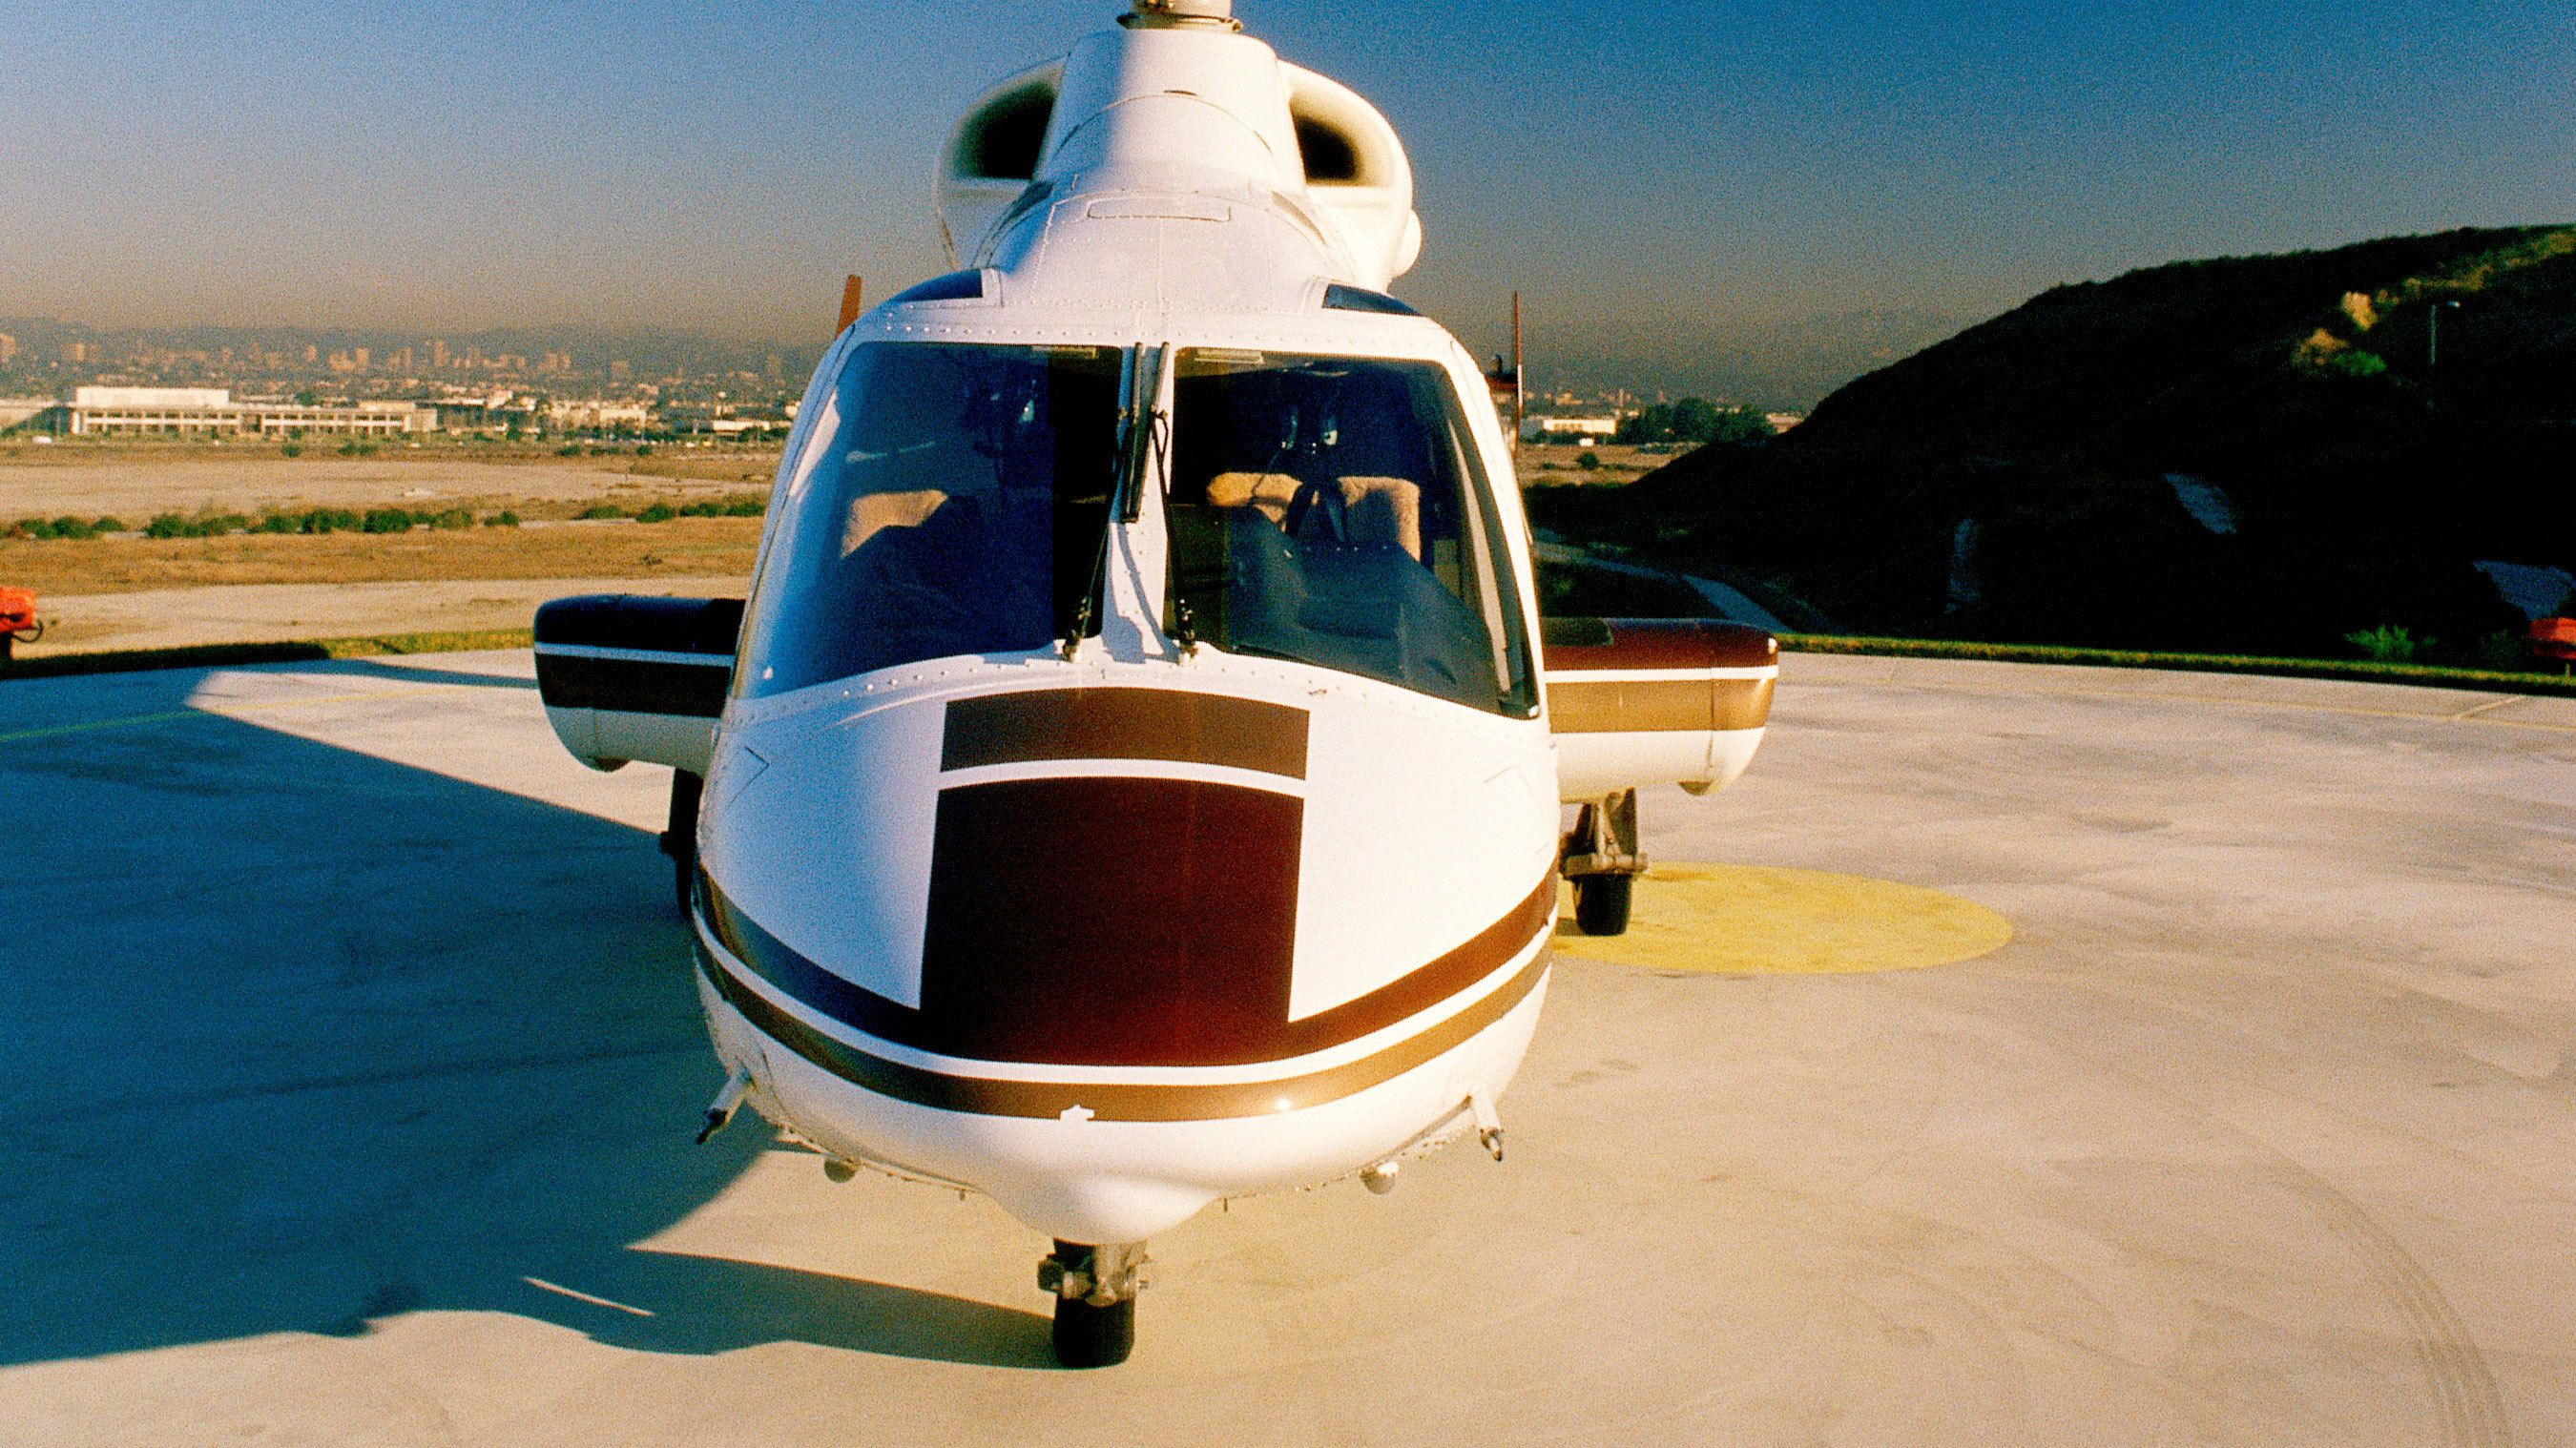 Helicopter getting ready to take off in Los Angeles